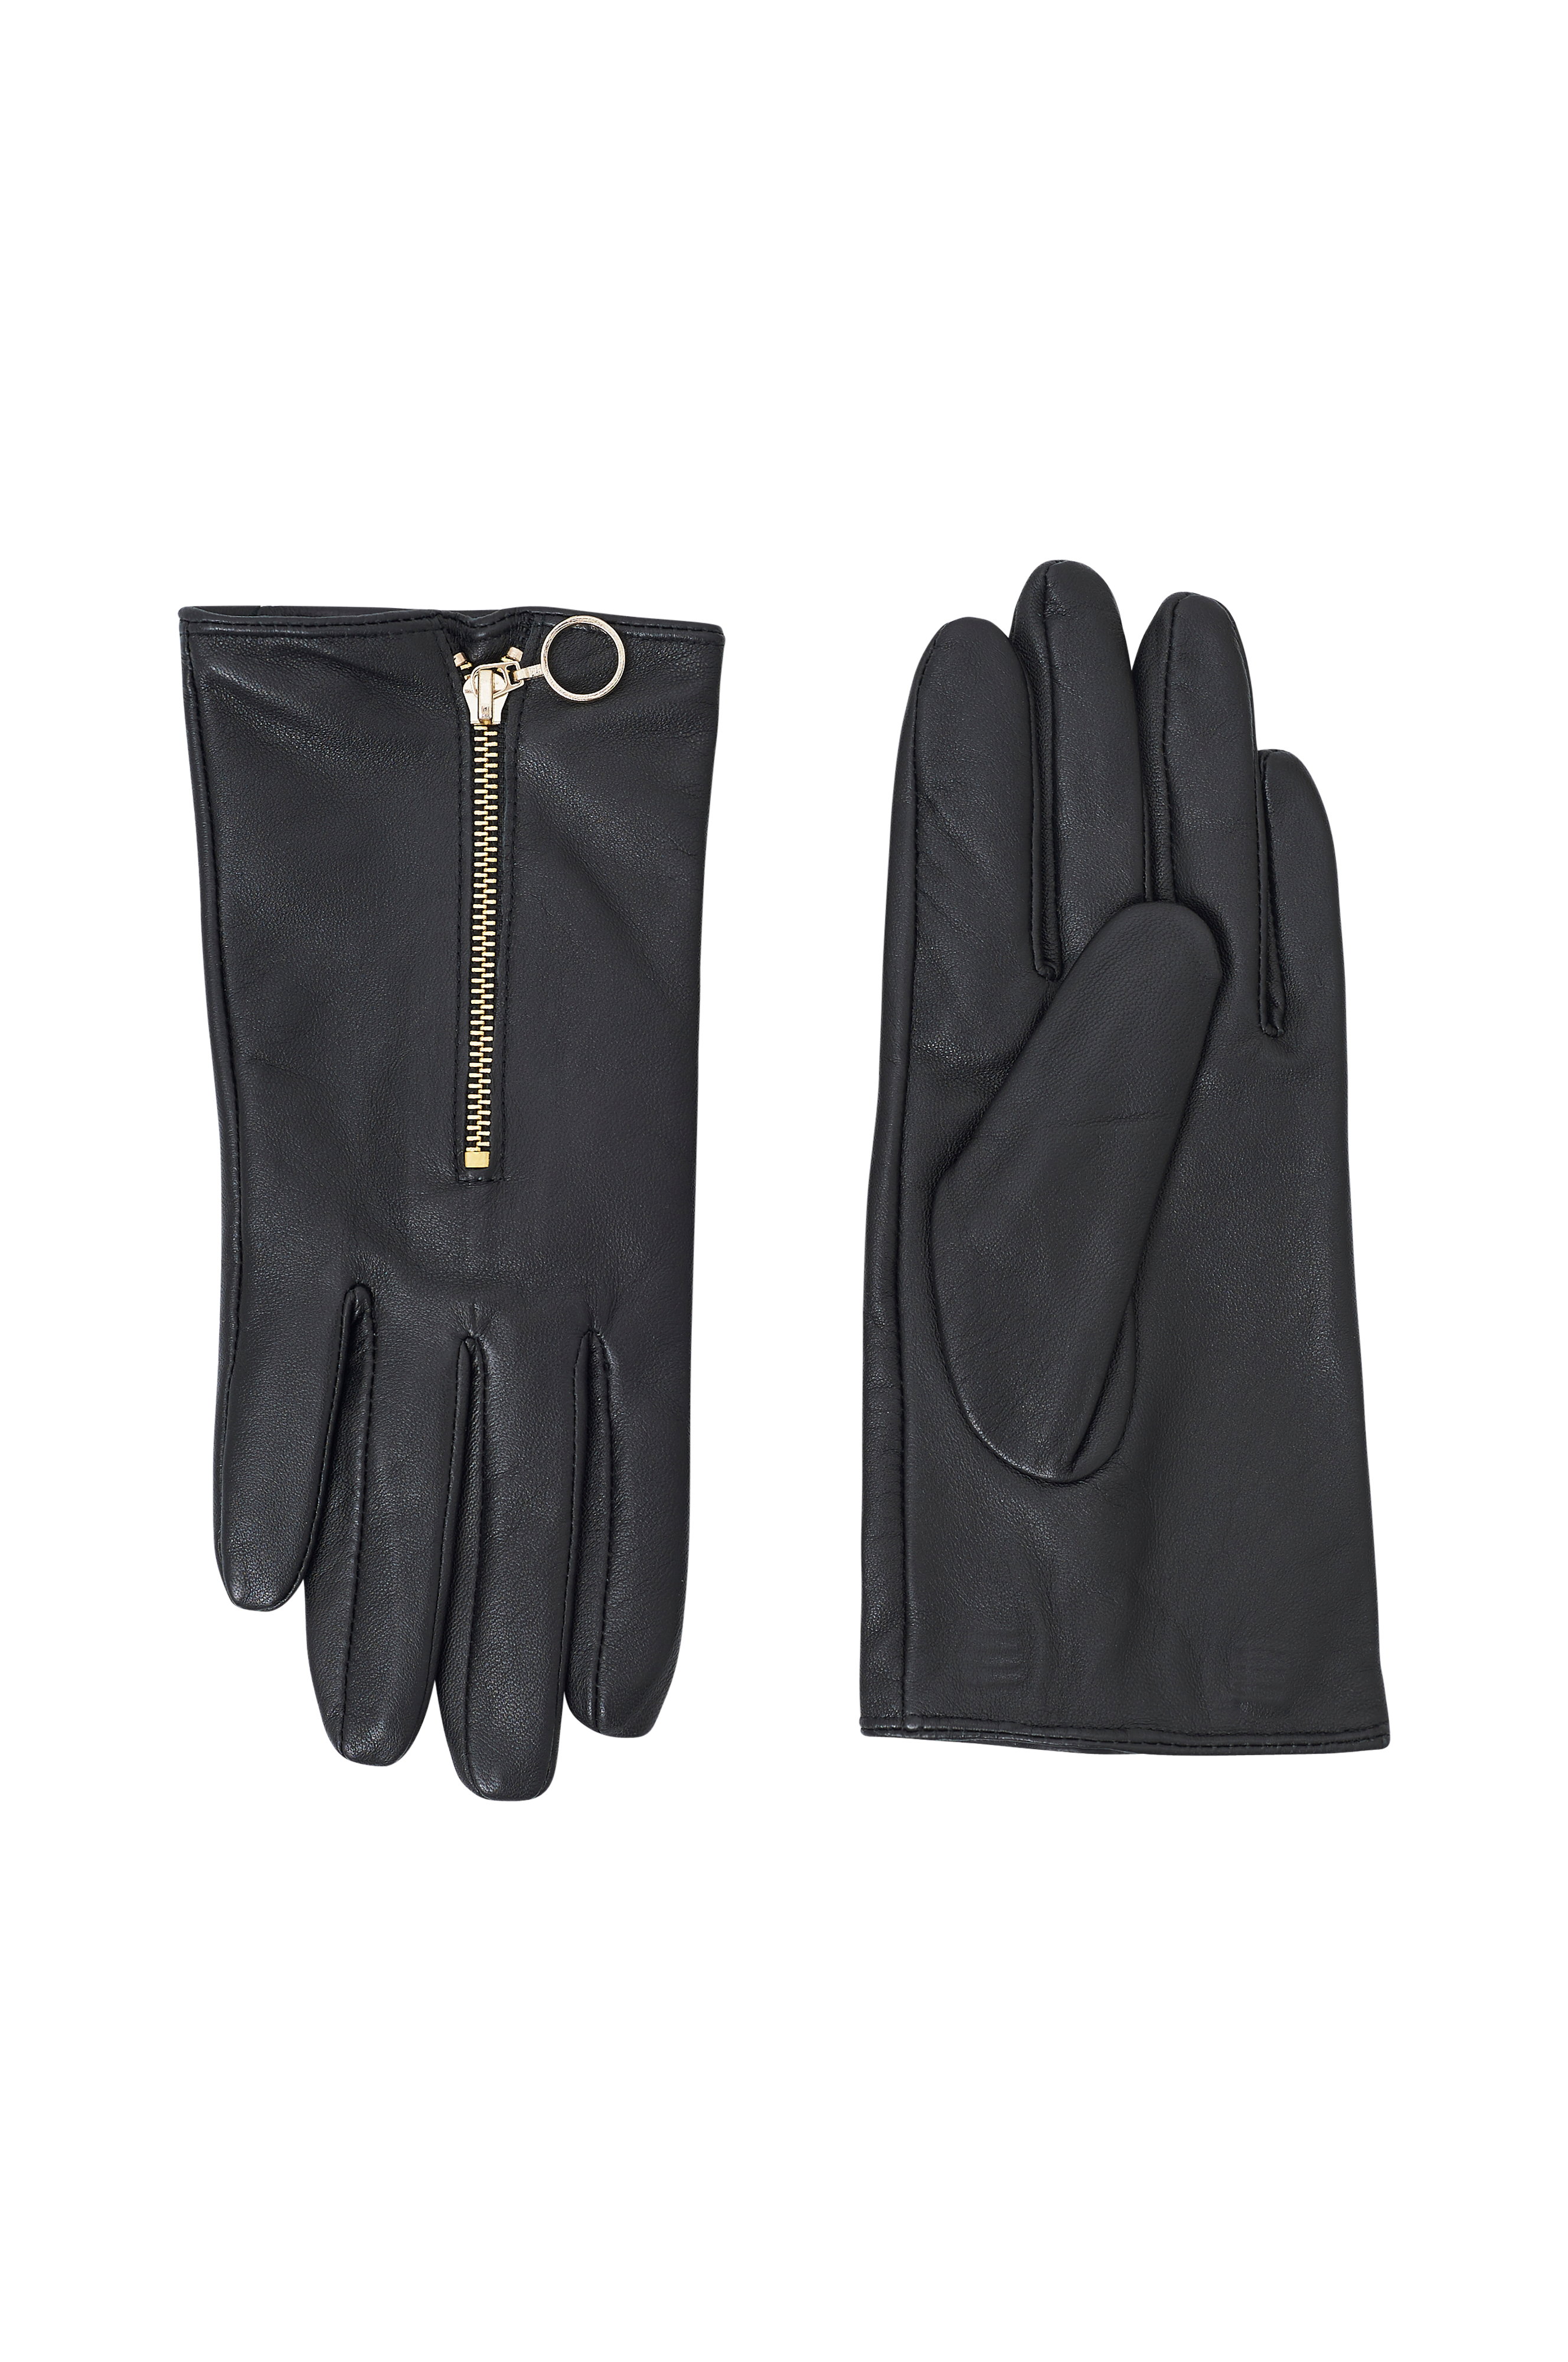 Leather gloves from Ellos Collection